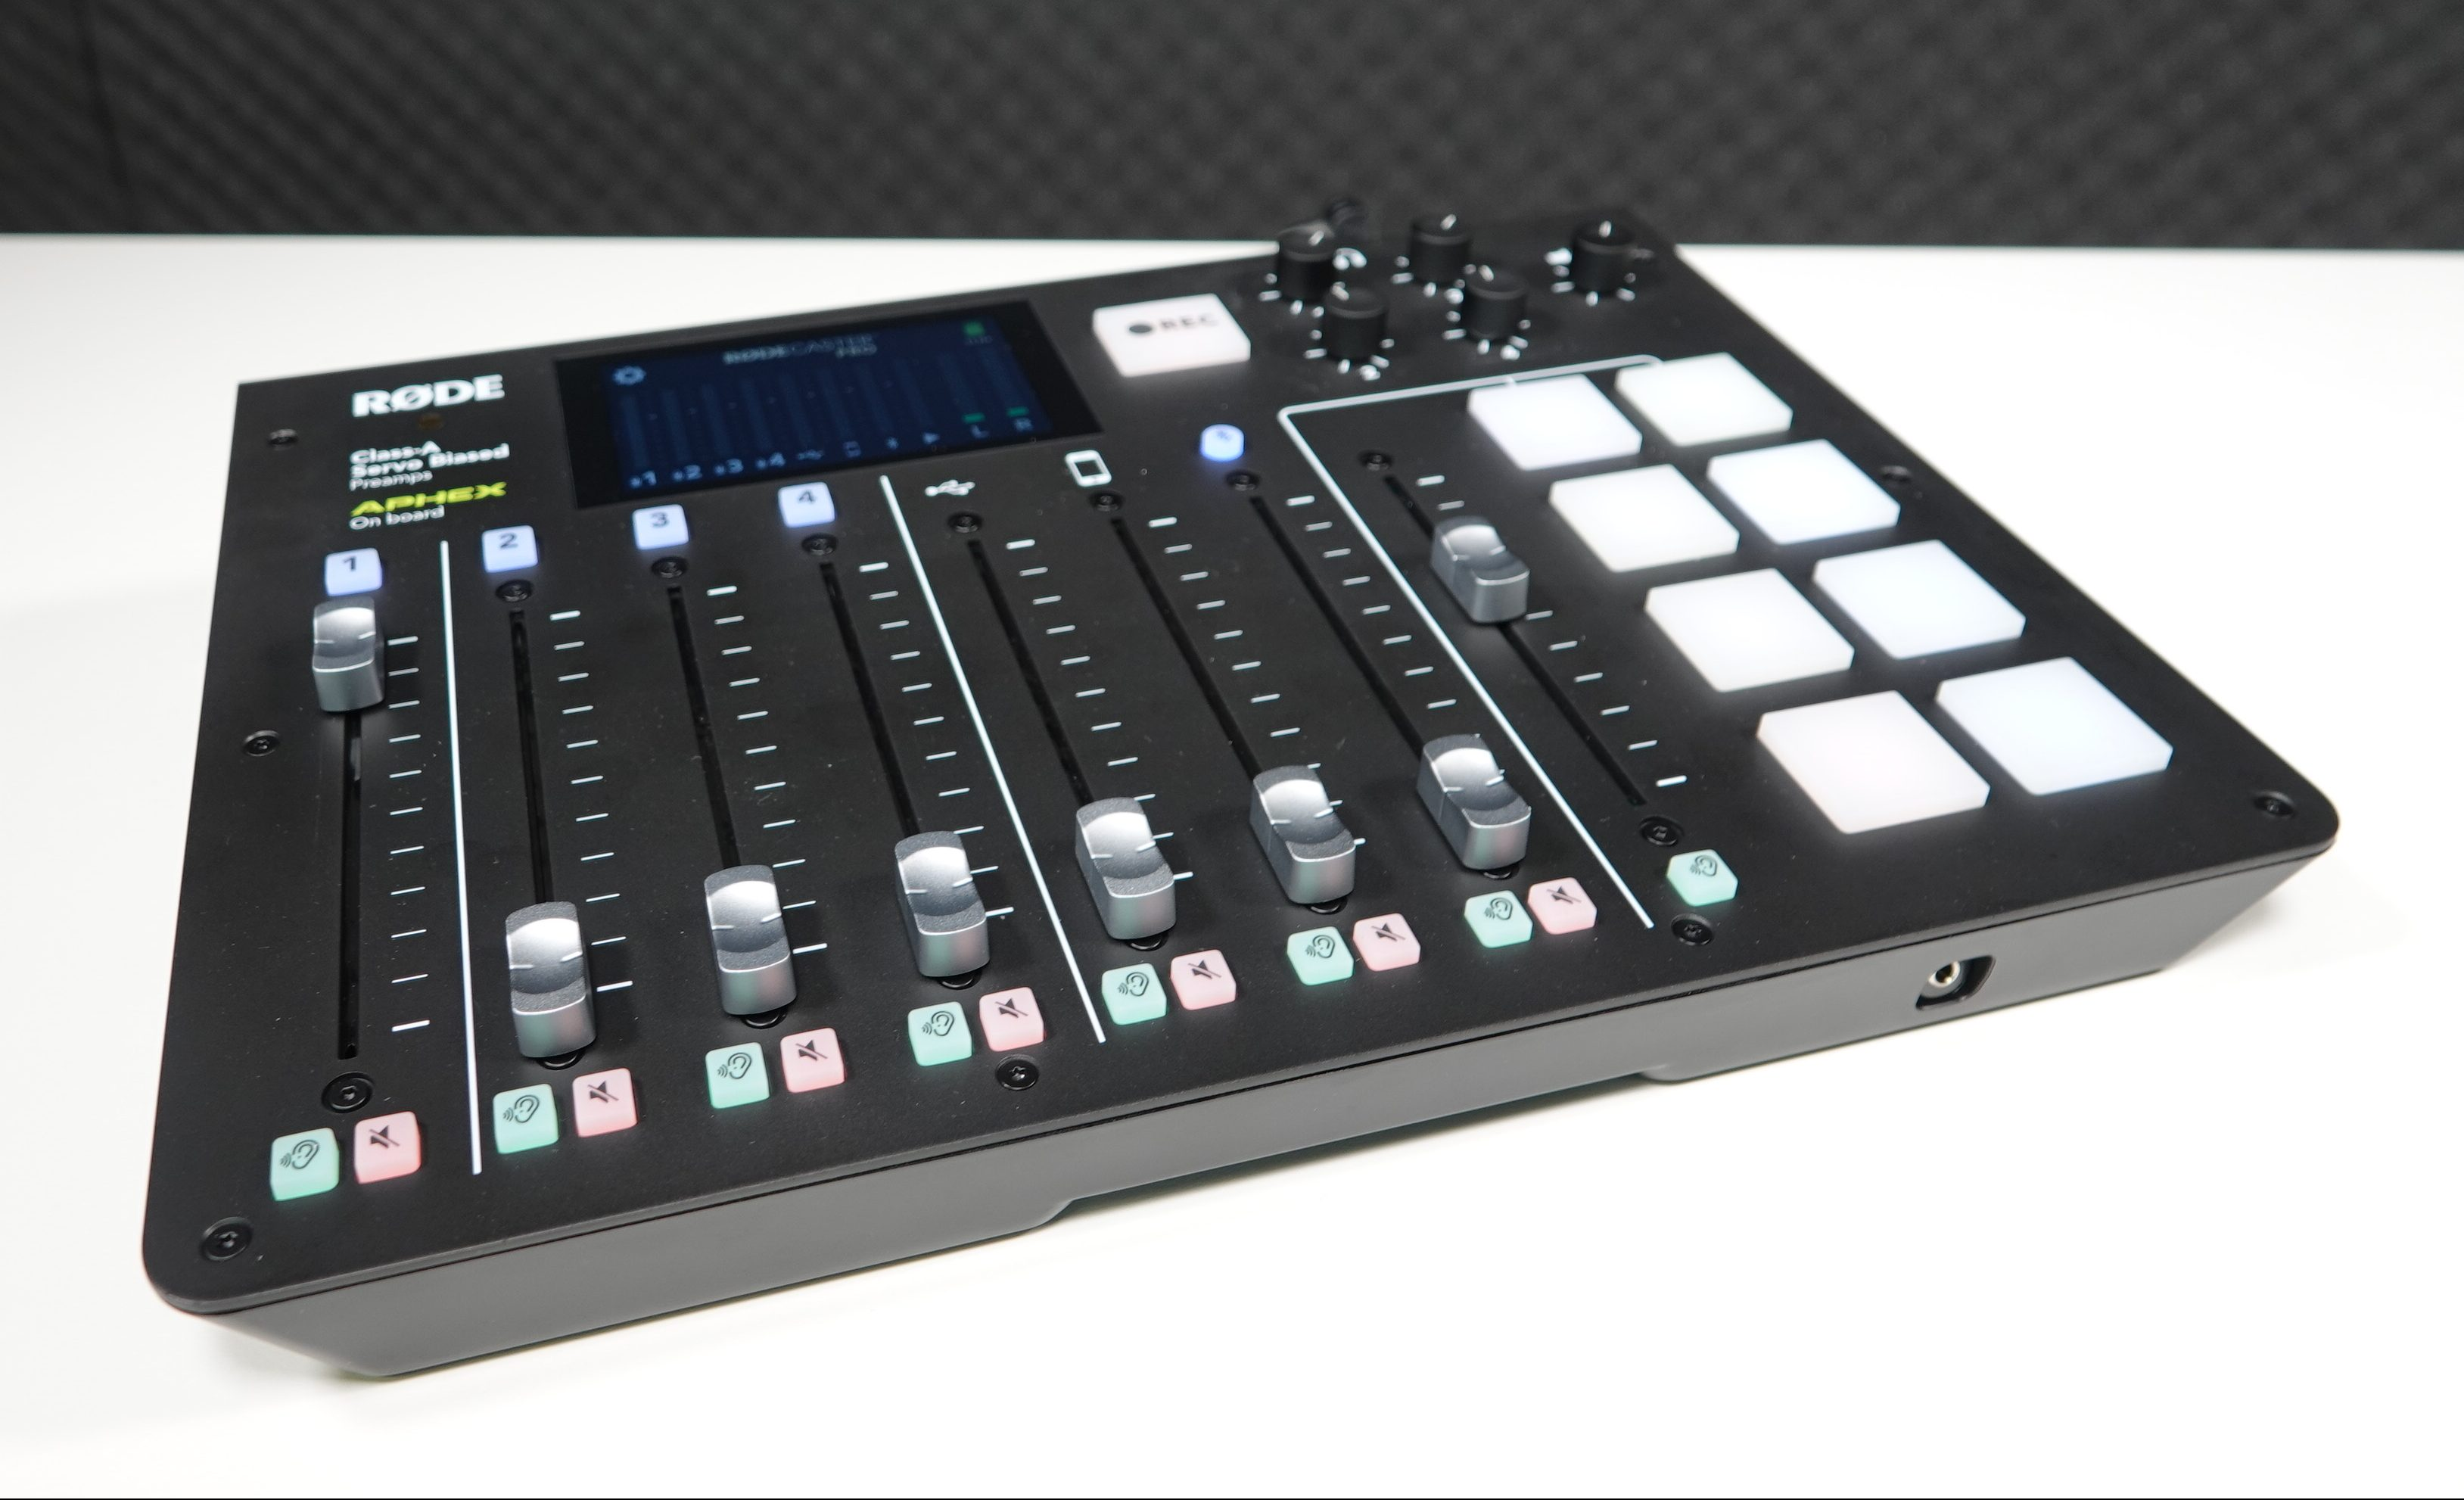 Rode adds Multitrack recording to RodeCaster Pro » EFTM